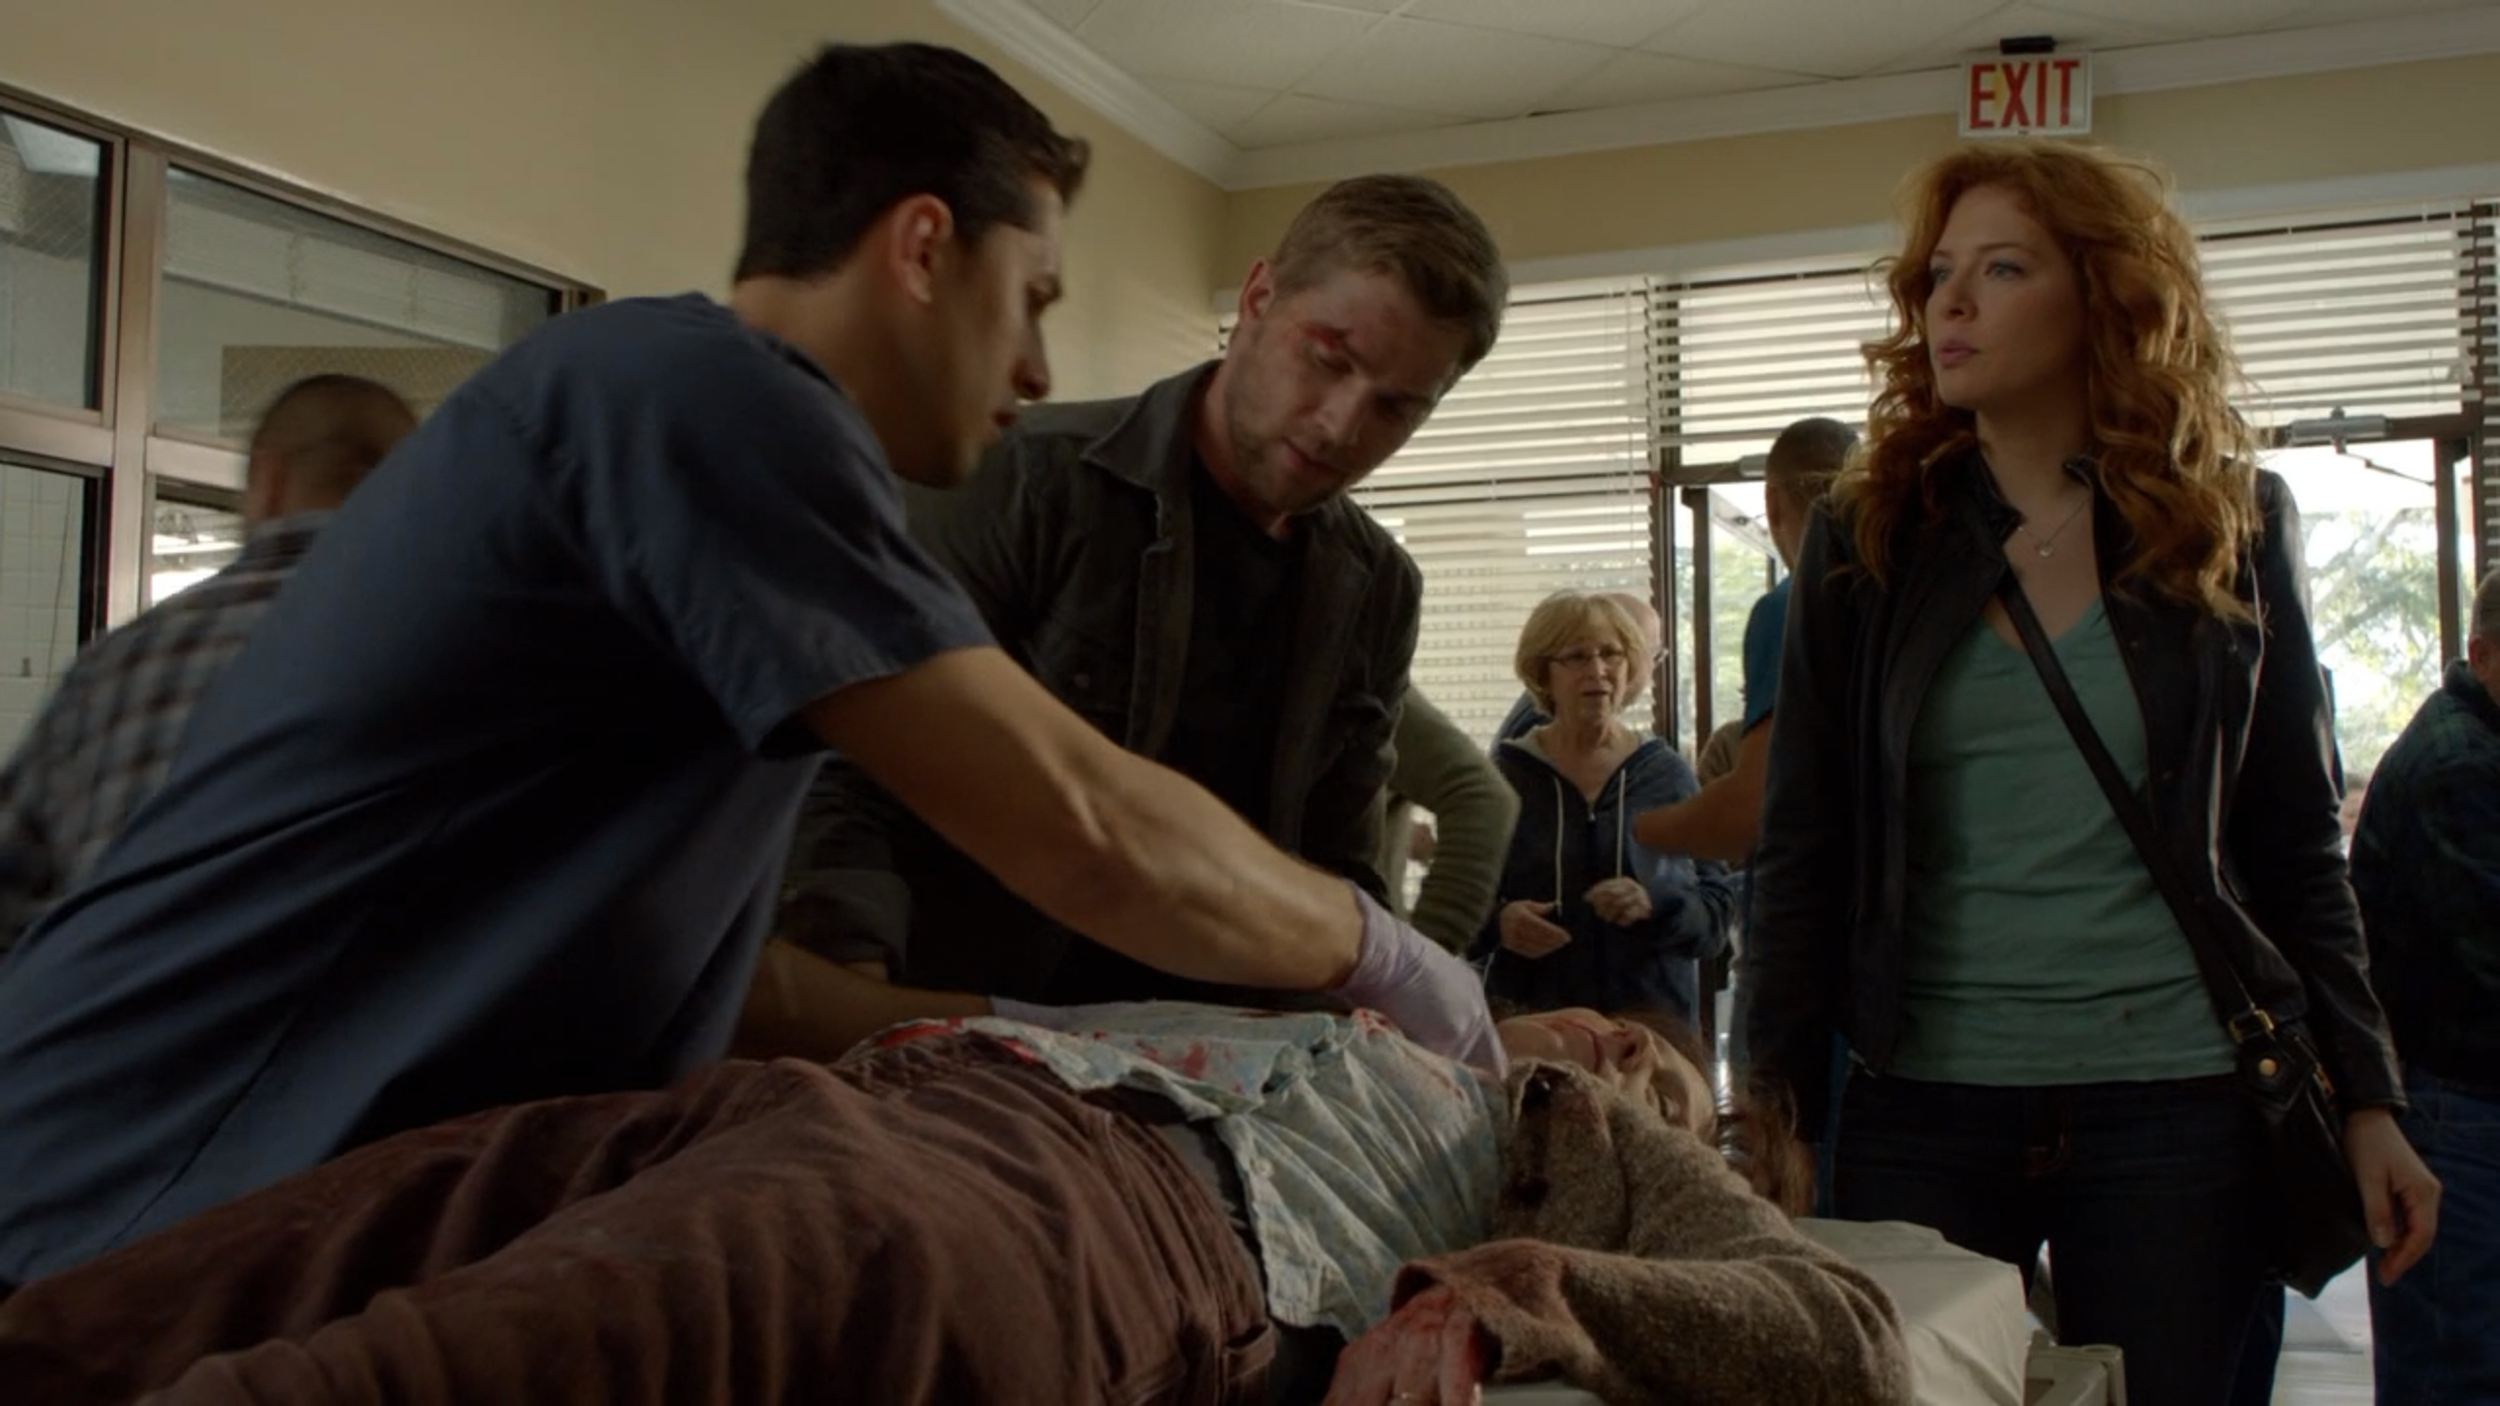 UNDER THE DOME  with Mike Vogel & Rachelle Lefevre